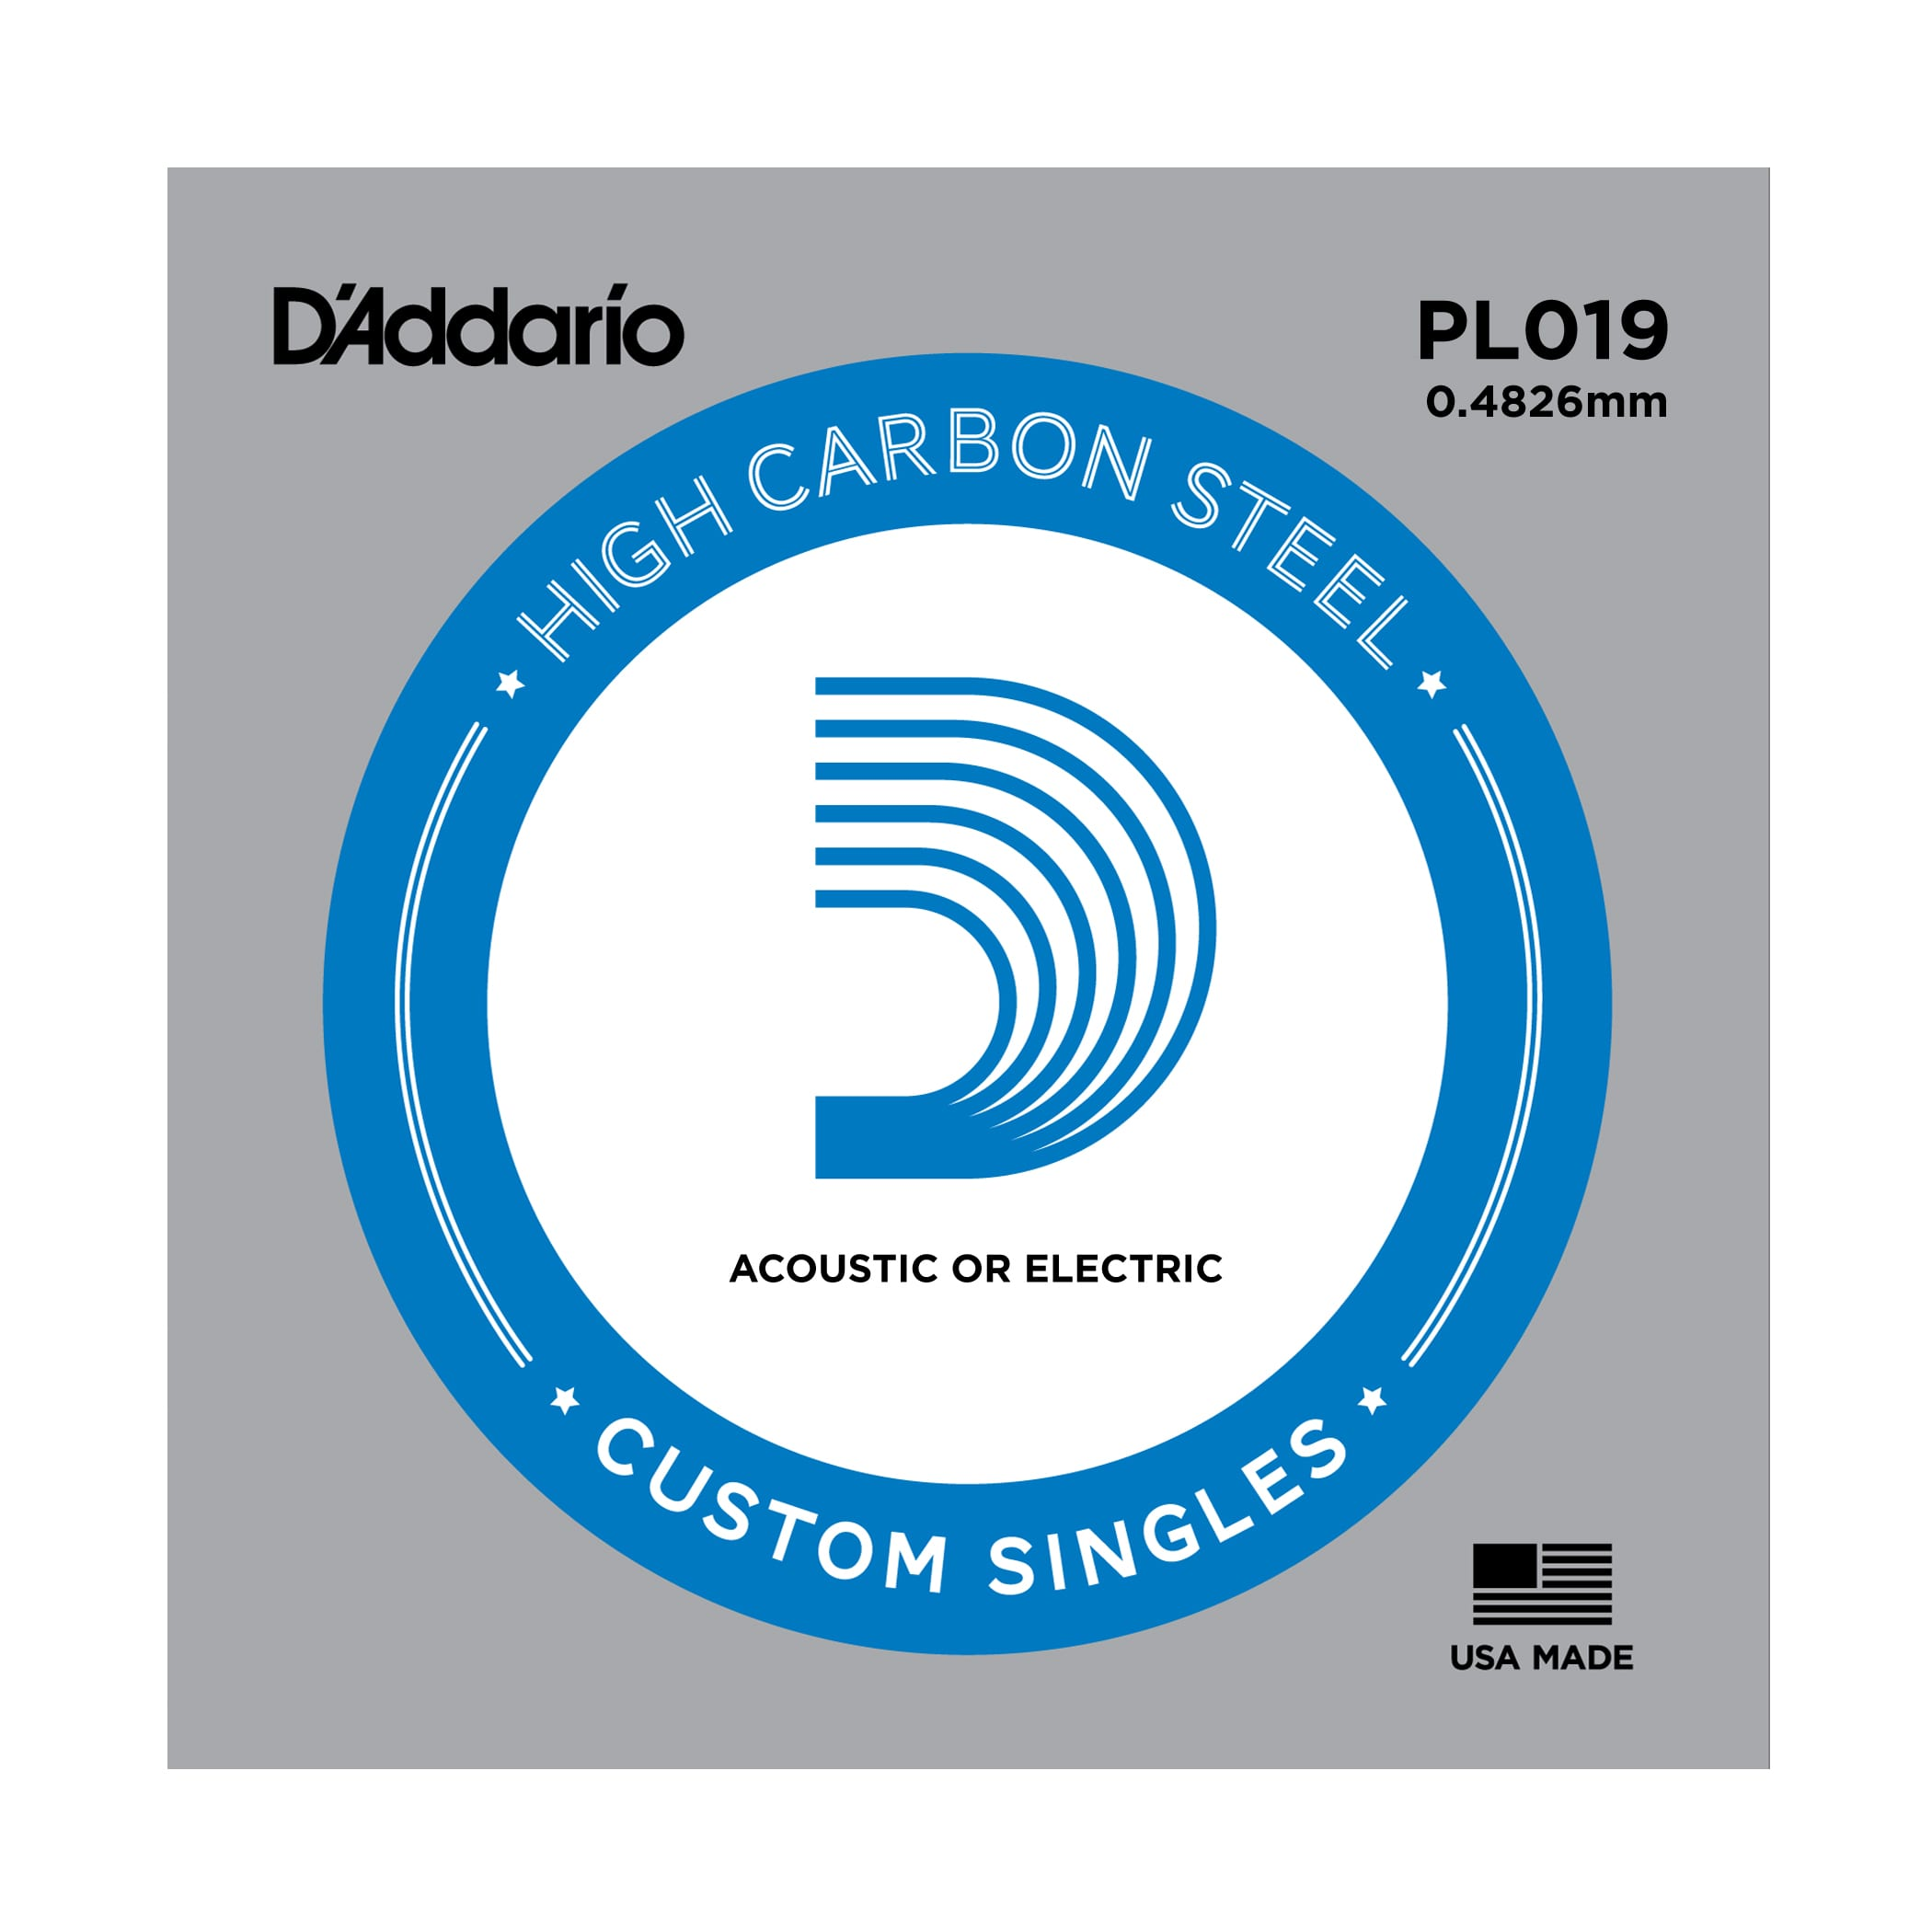 D'Addario PL019 Plain Steel Single Guitar String